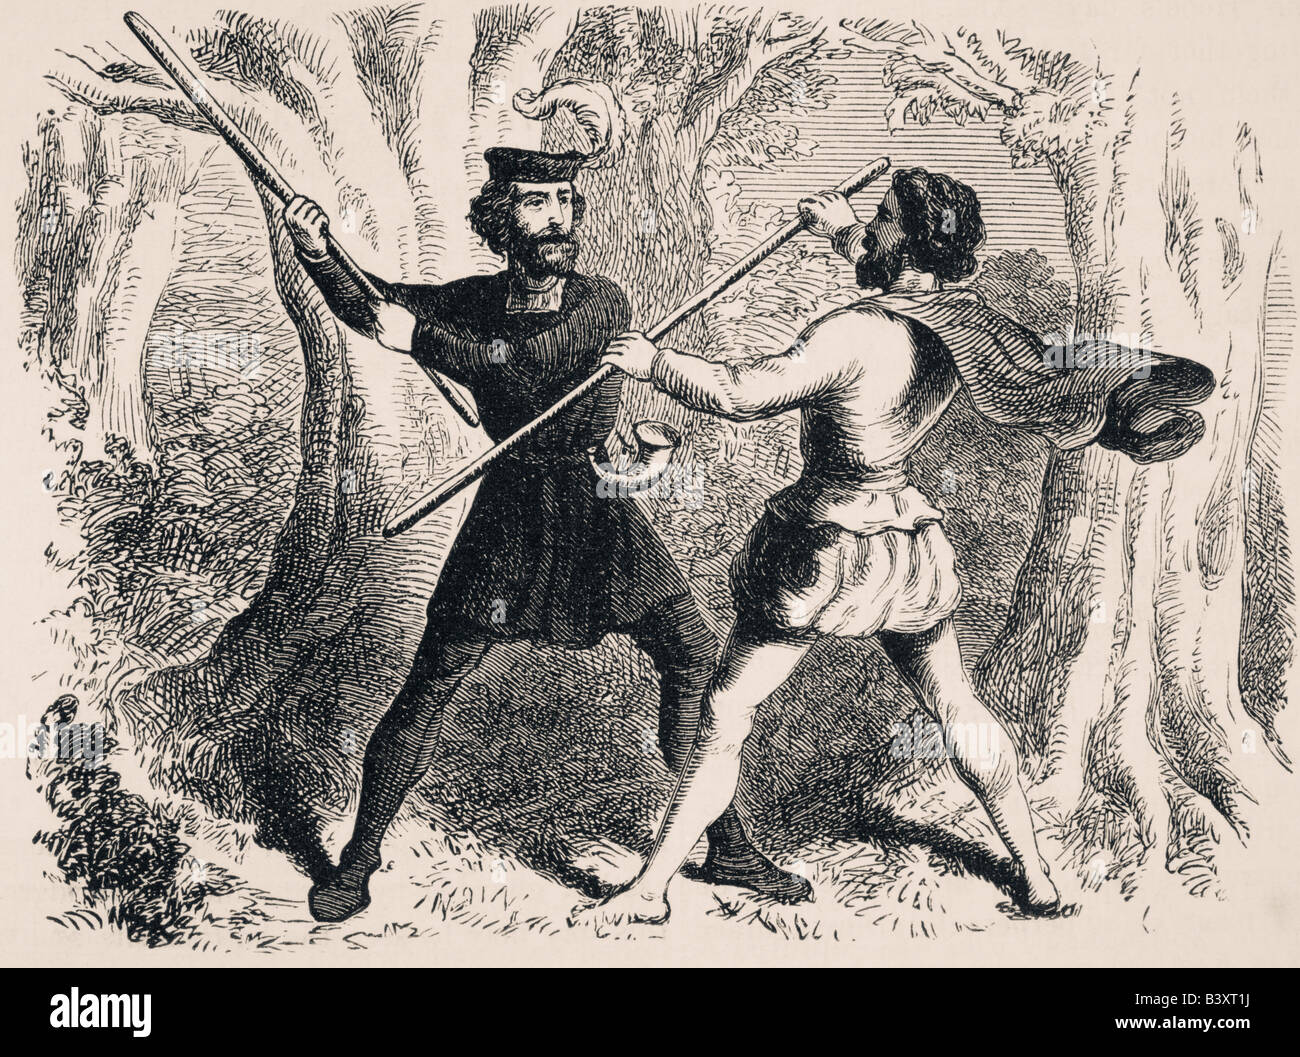 Two men fighting with quarter staffs.  Robin Hood and Little John. - Stock Image